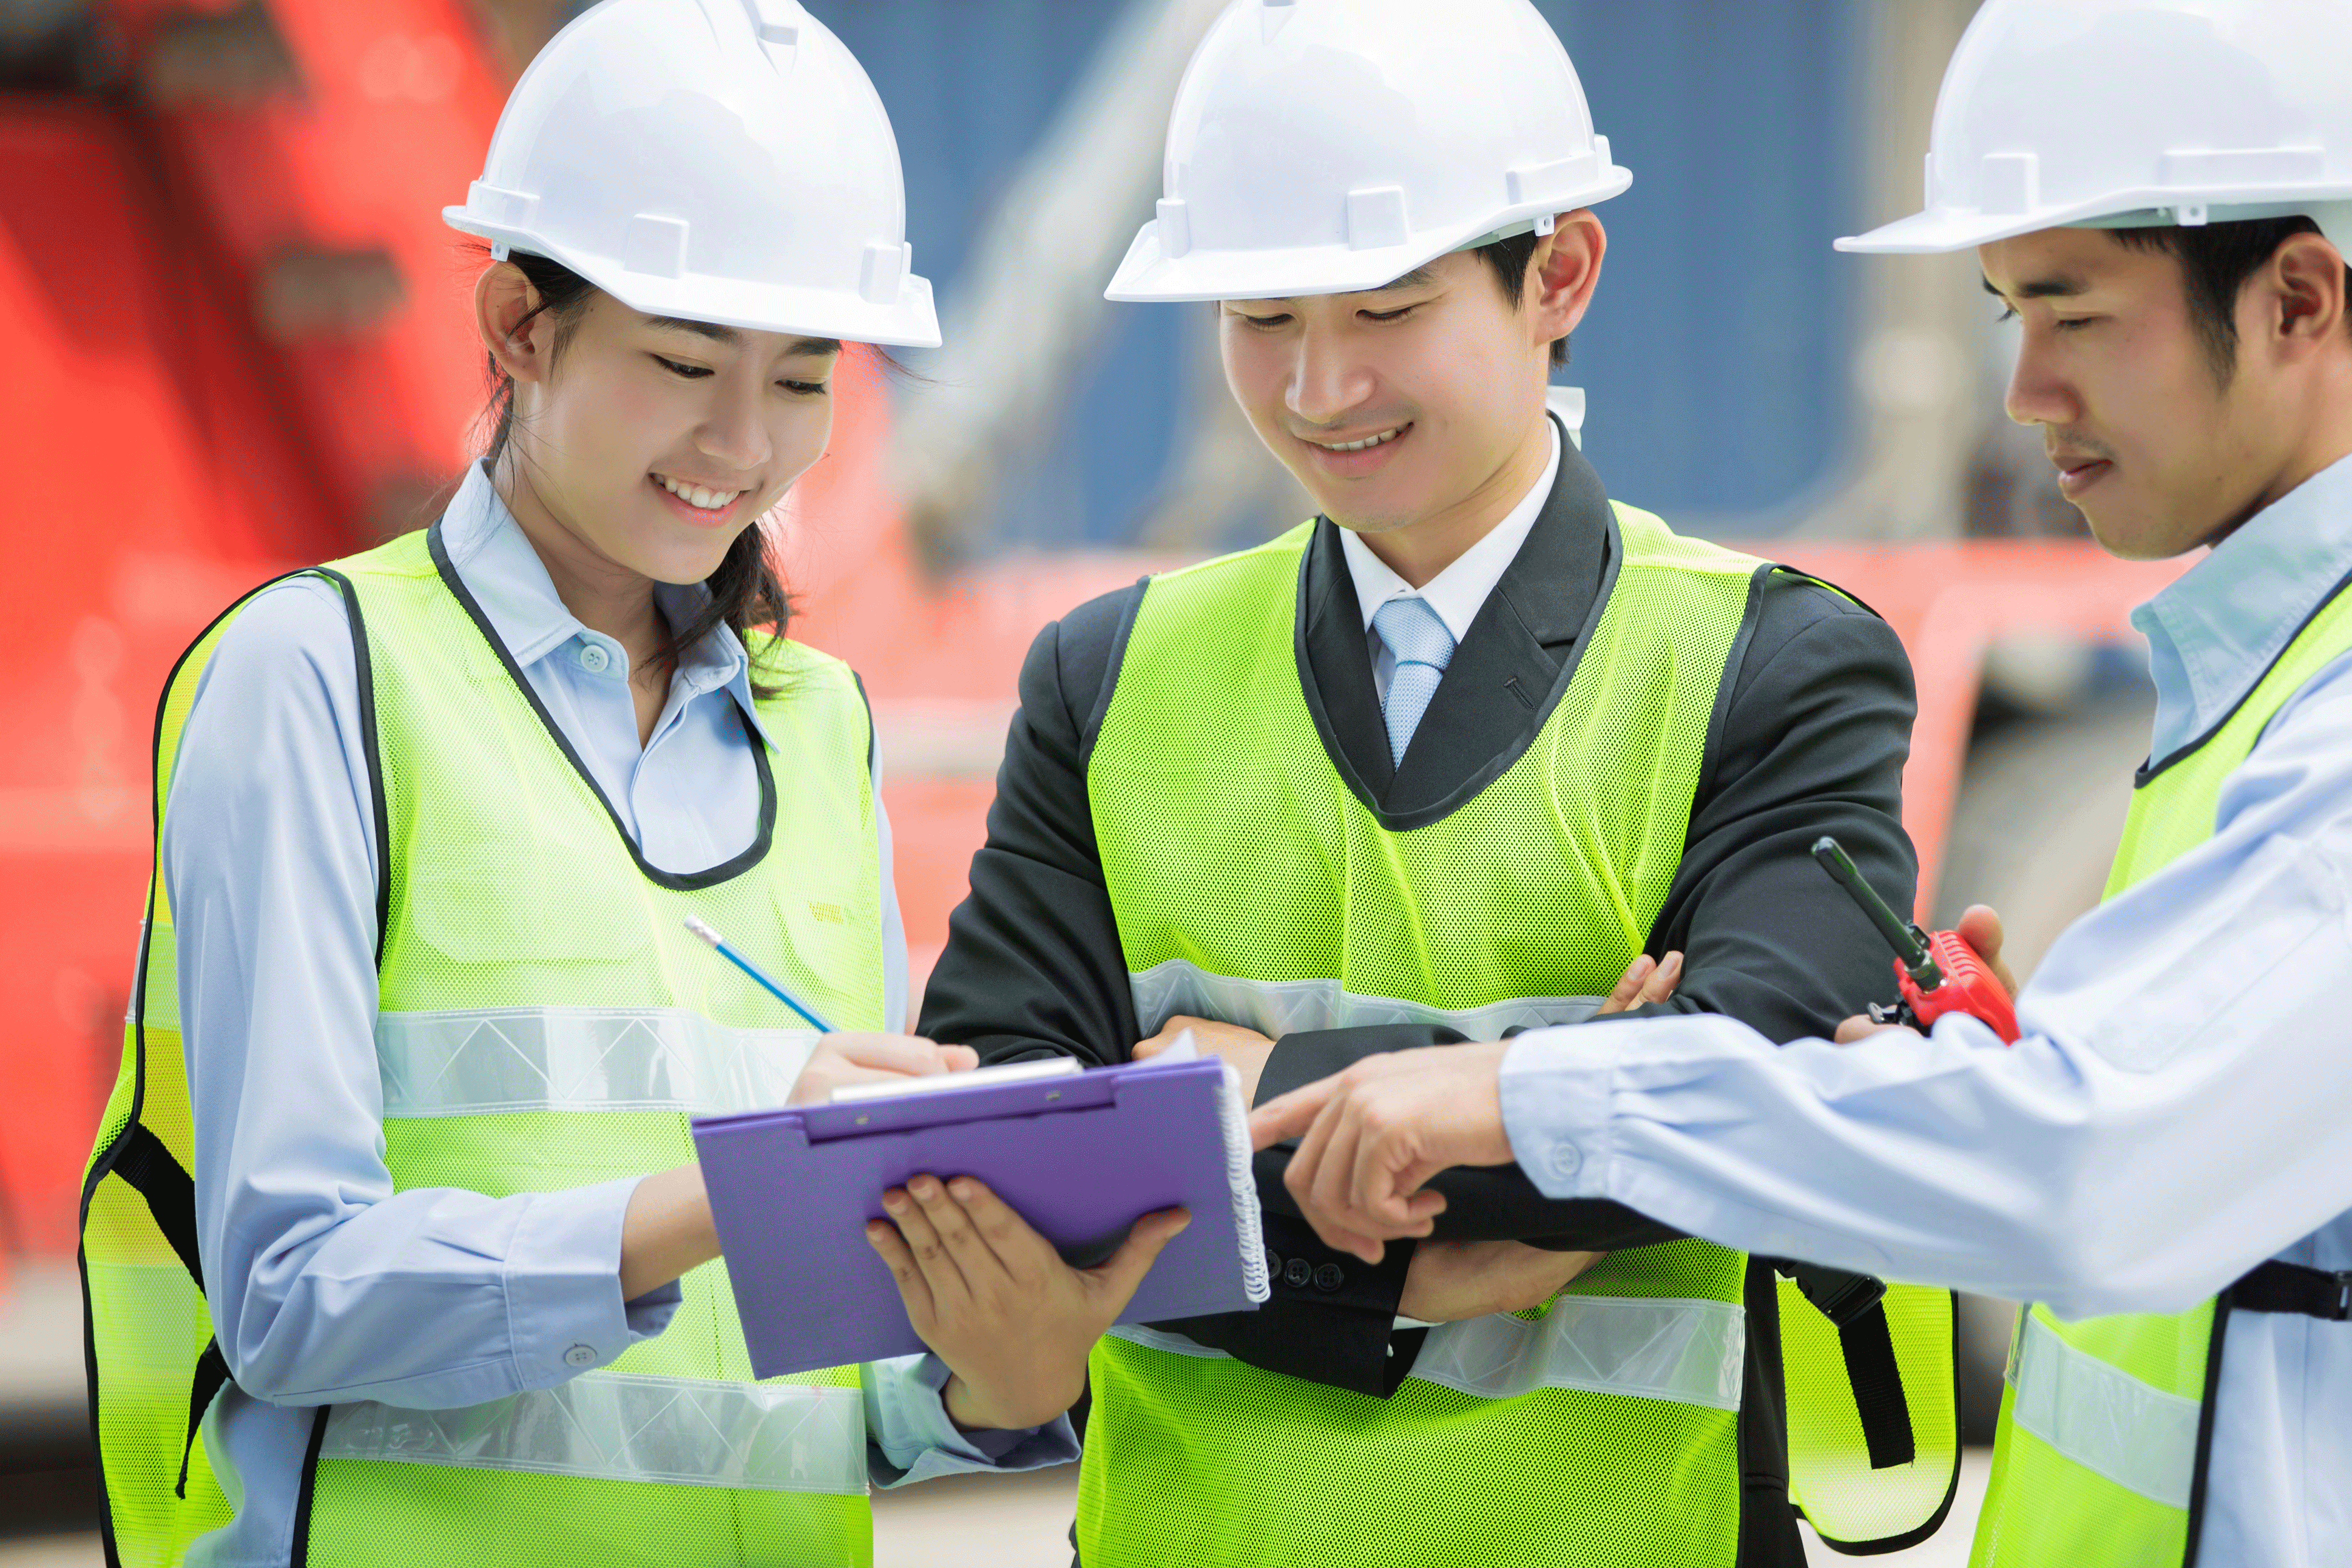 stock-photo-asian-engineers-were-consulted-together-and-plan-406595410